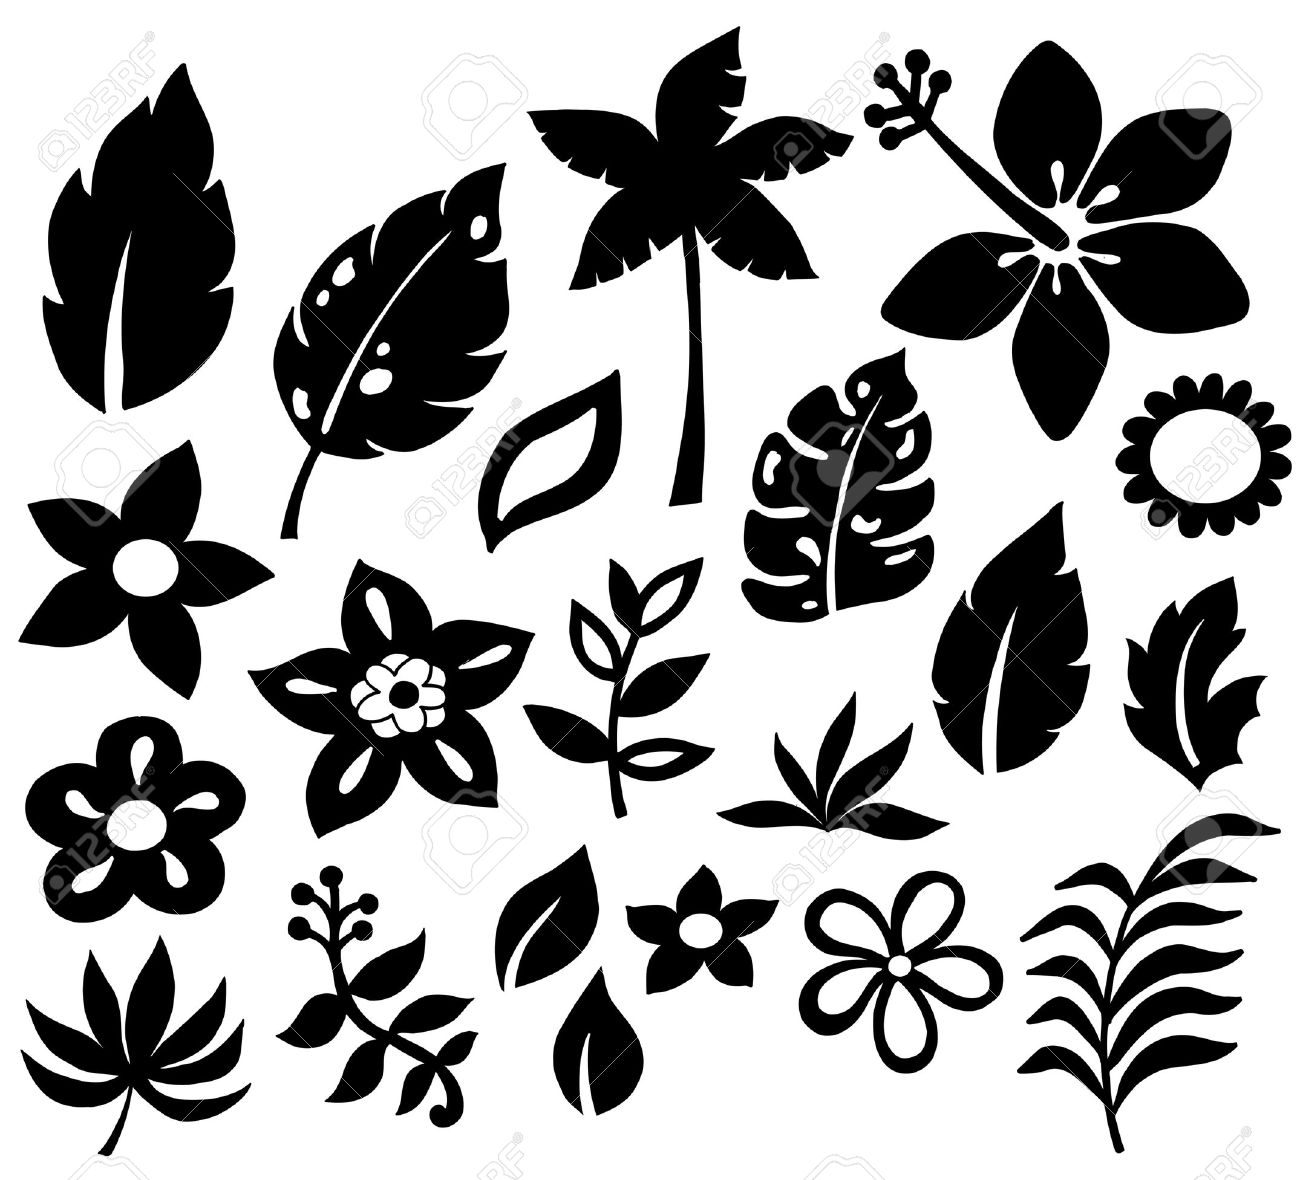 Vines Flowers Vector Flower And Leaf Vector